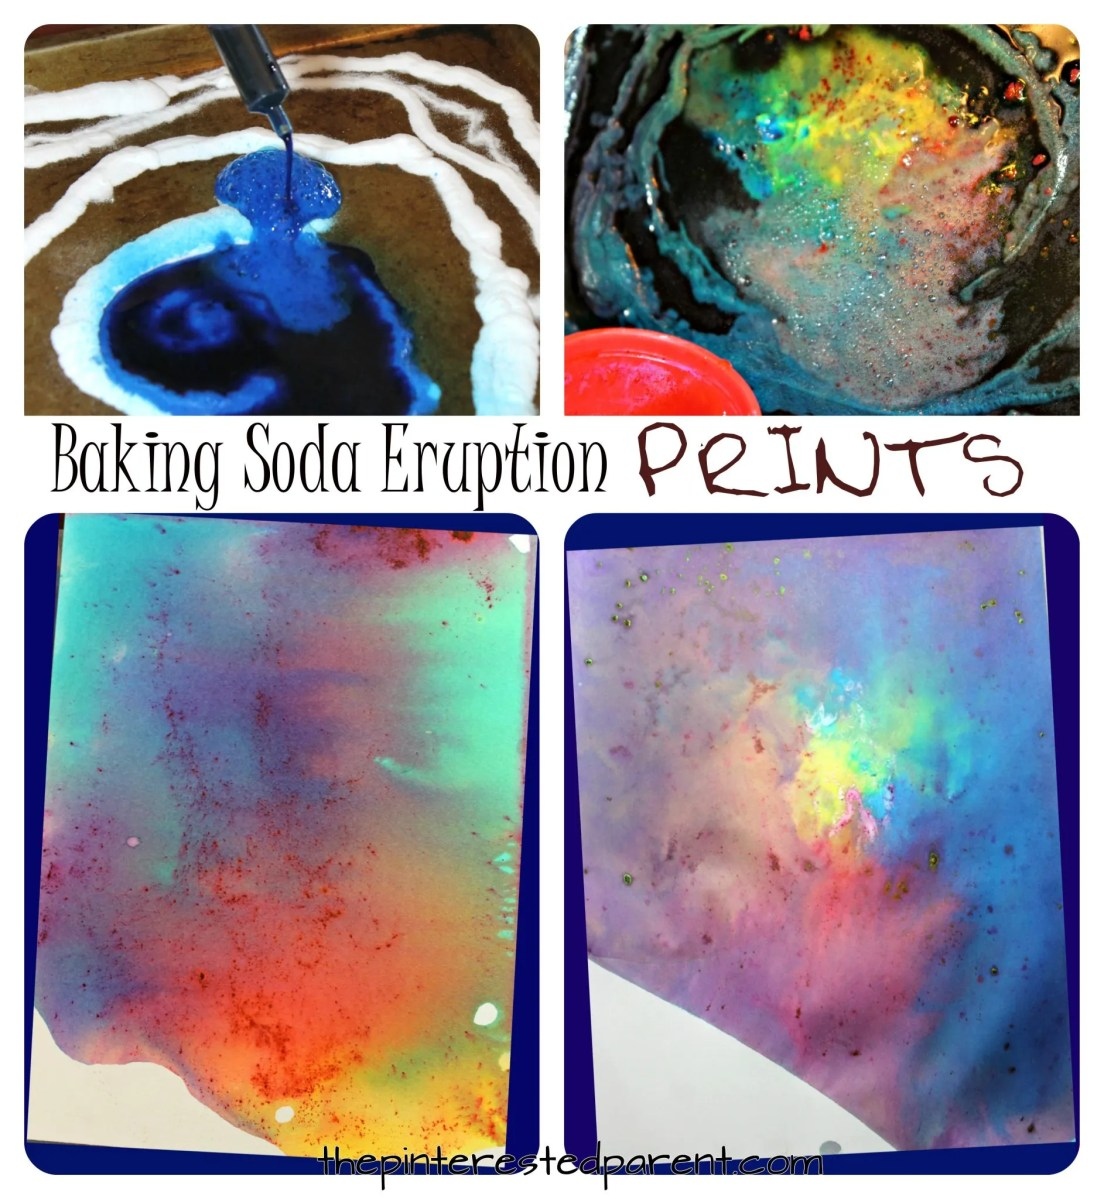 Baking Soda Eruption Prints